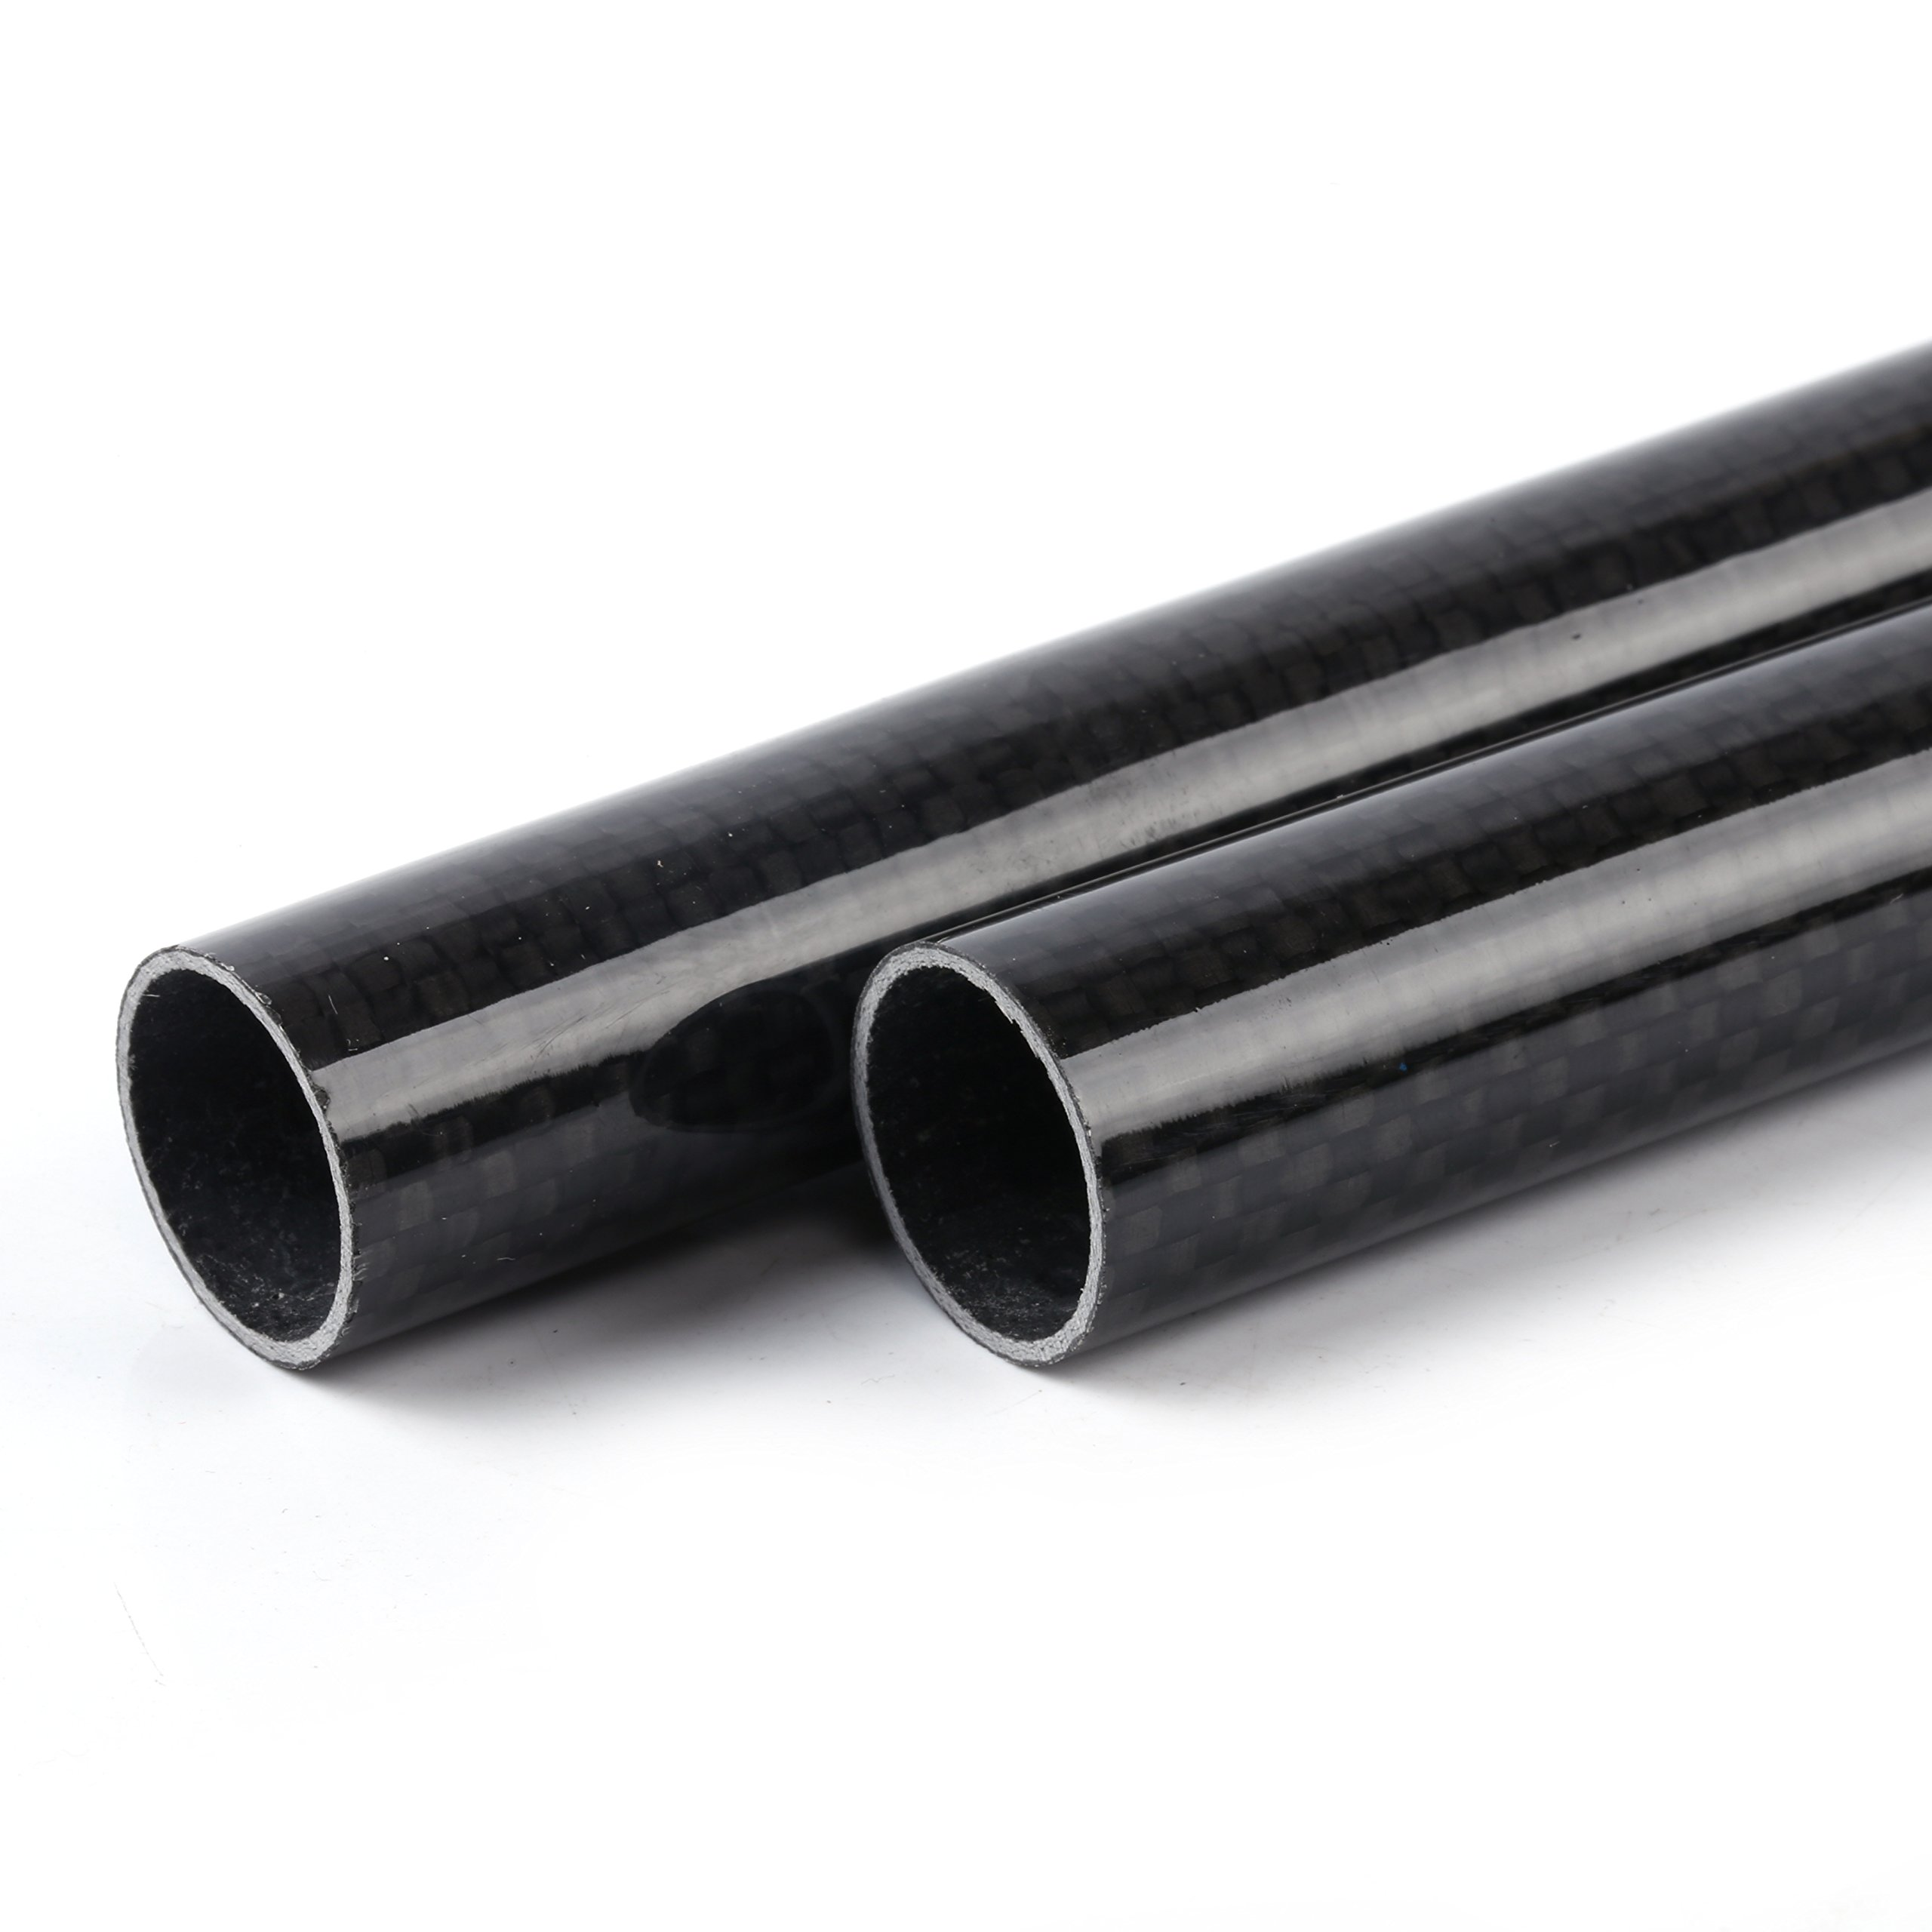 ALSTON 3K Wrapped Carbon Fiber Tube 8x10x500mm Light Surfaces Pack of Two Pcs